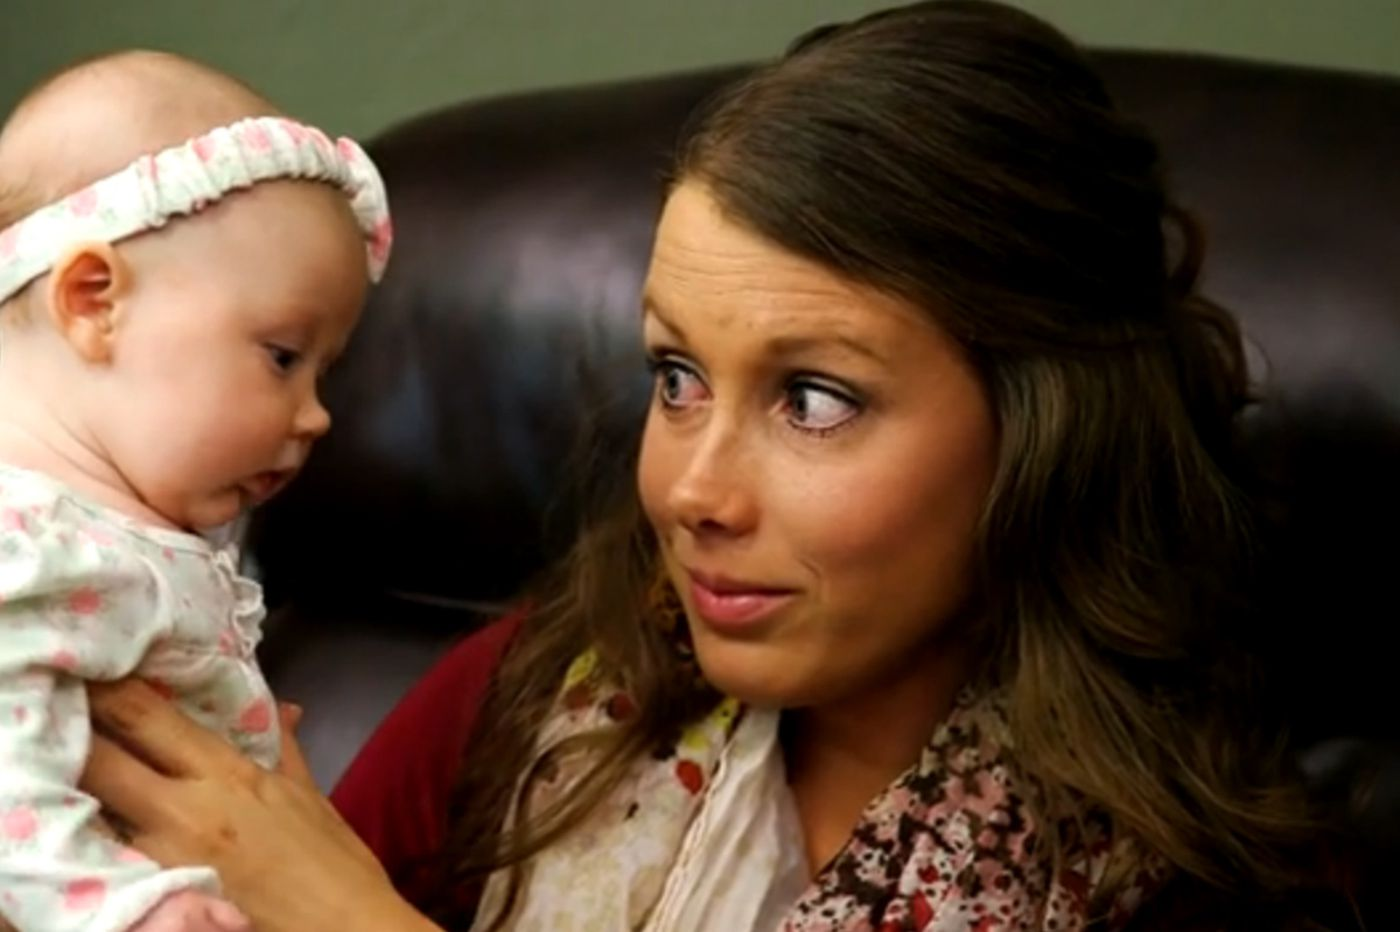 Sideshow: Anna Duggar speaks - for TV